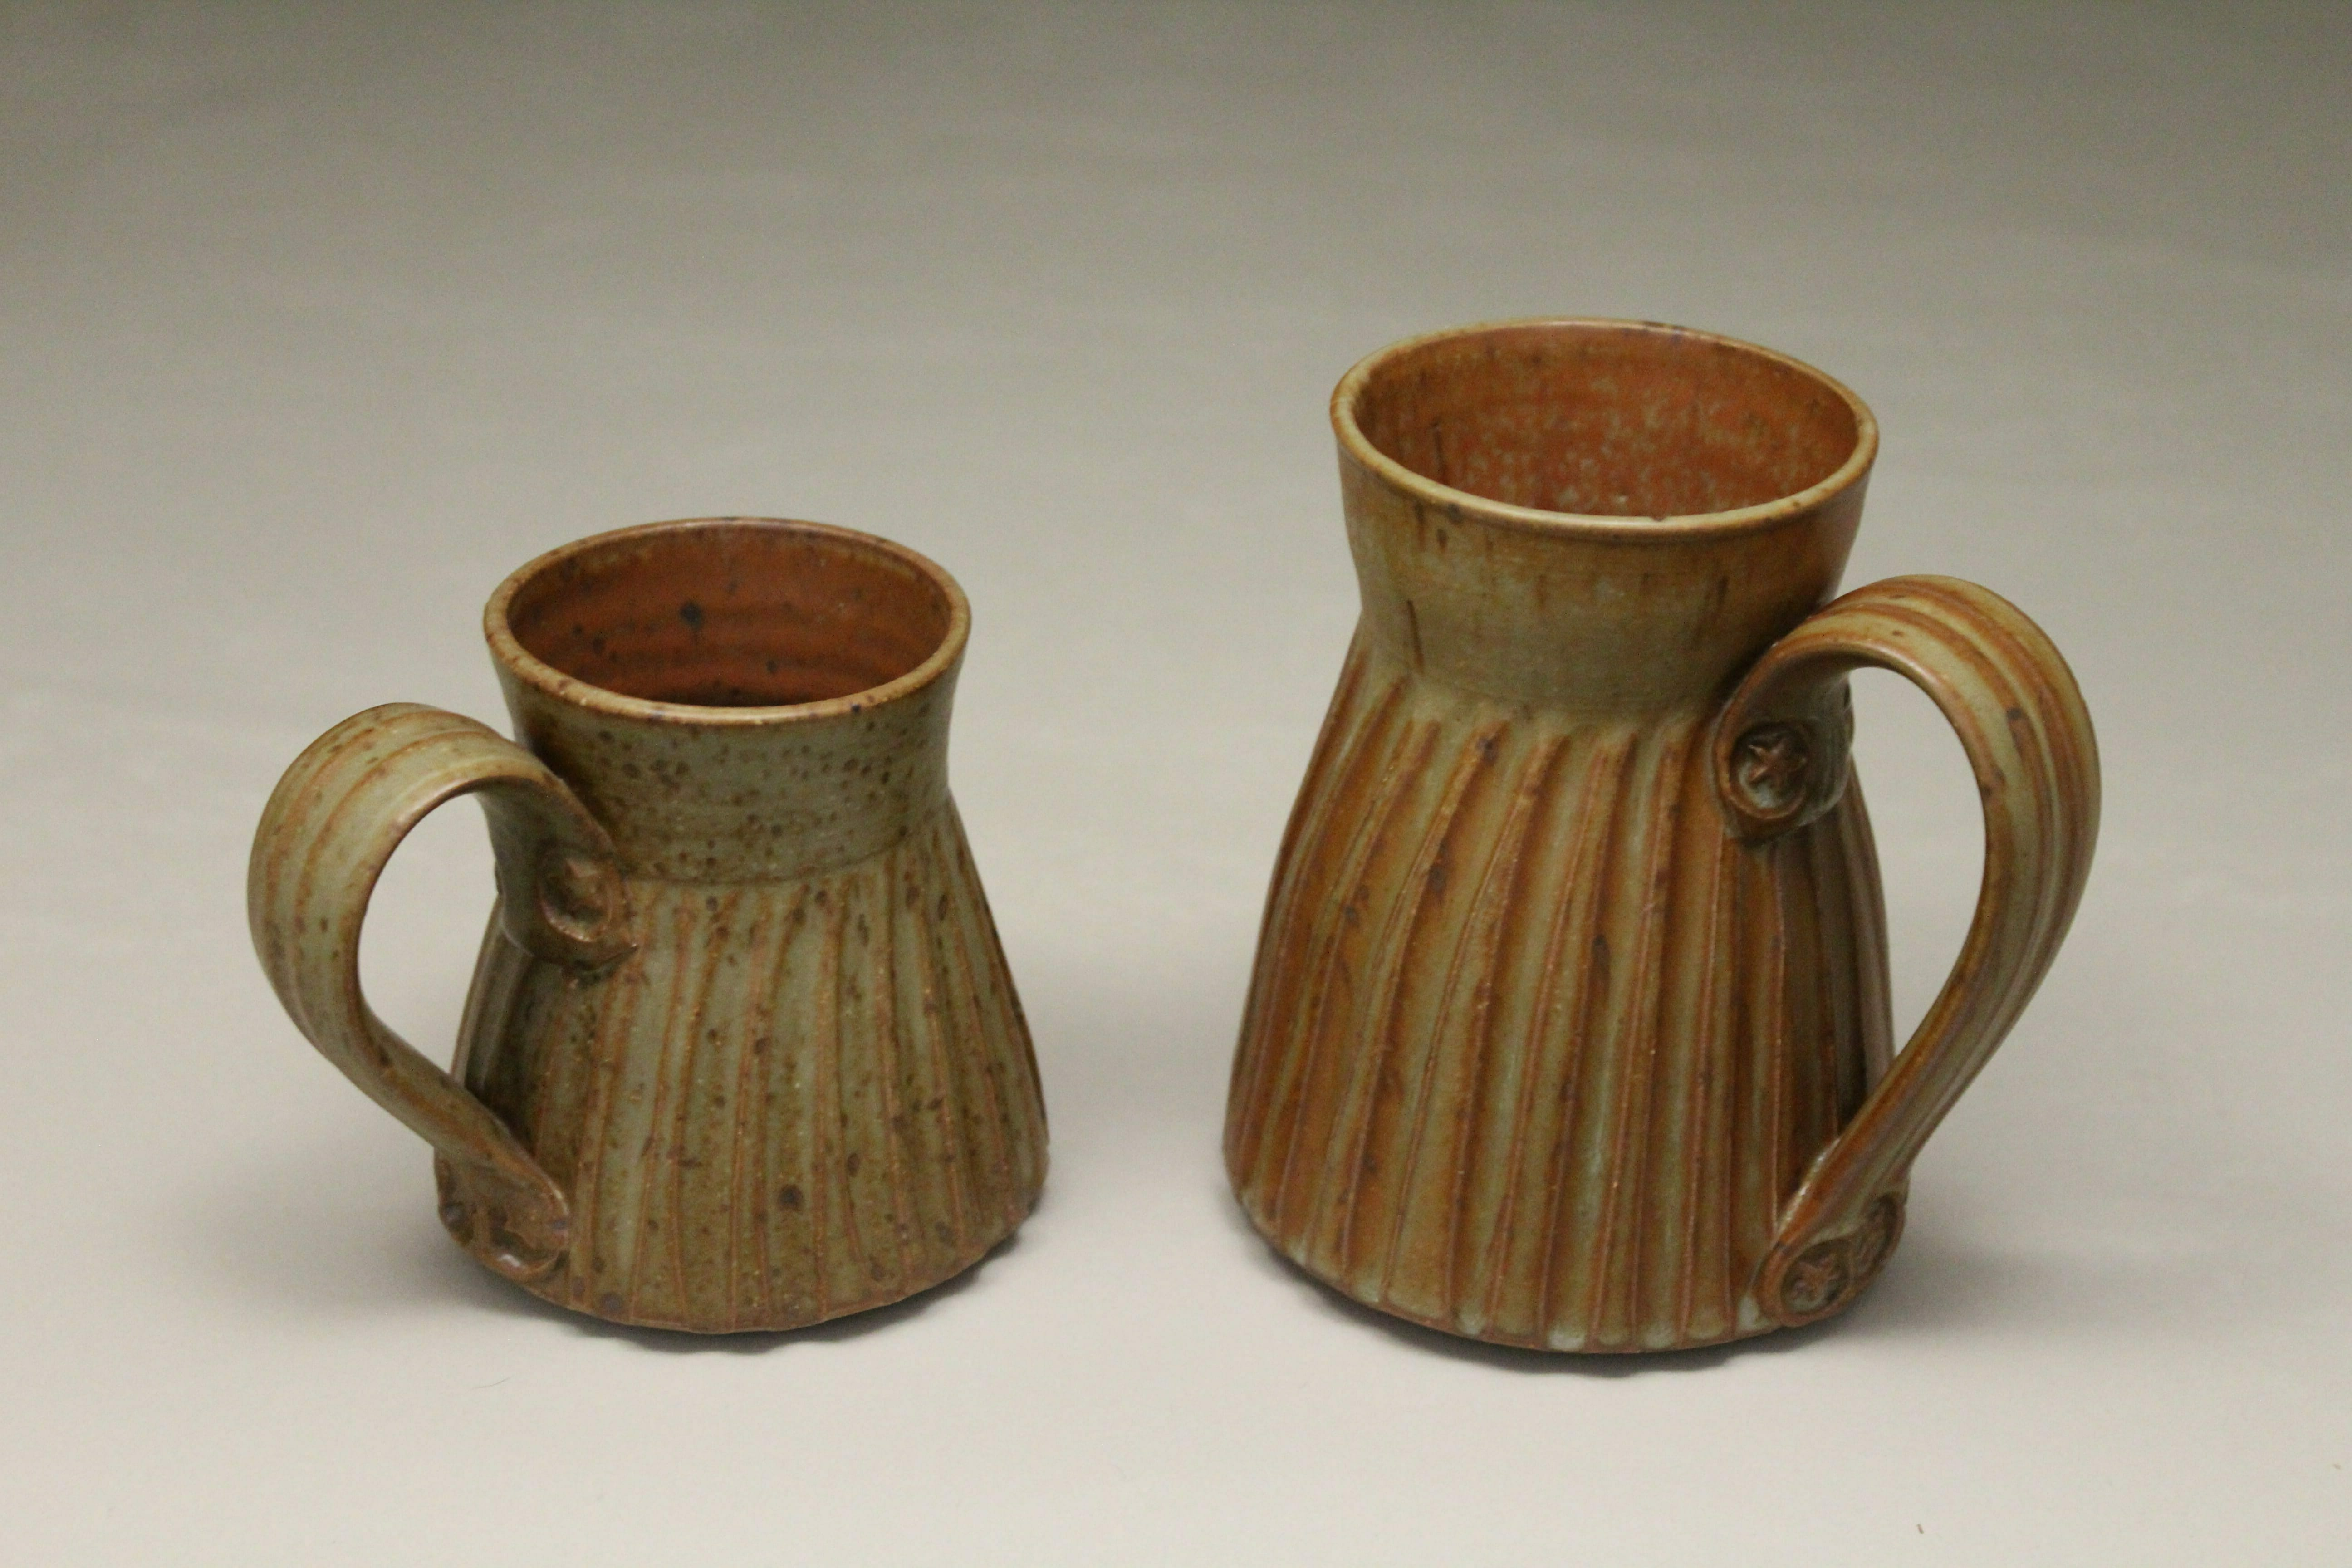 Mug, Small and Large Sizes, Fluted Design in Spodumene Glaze